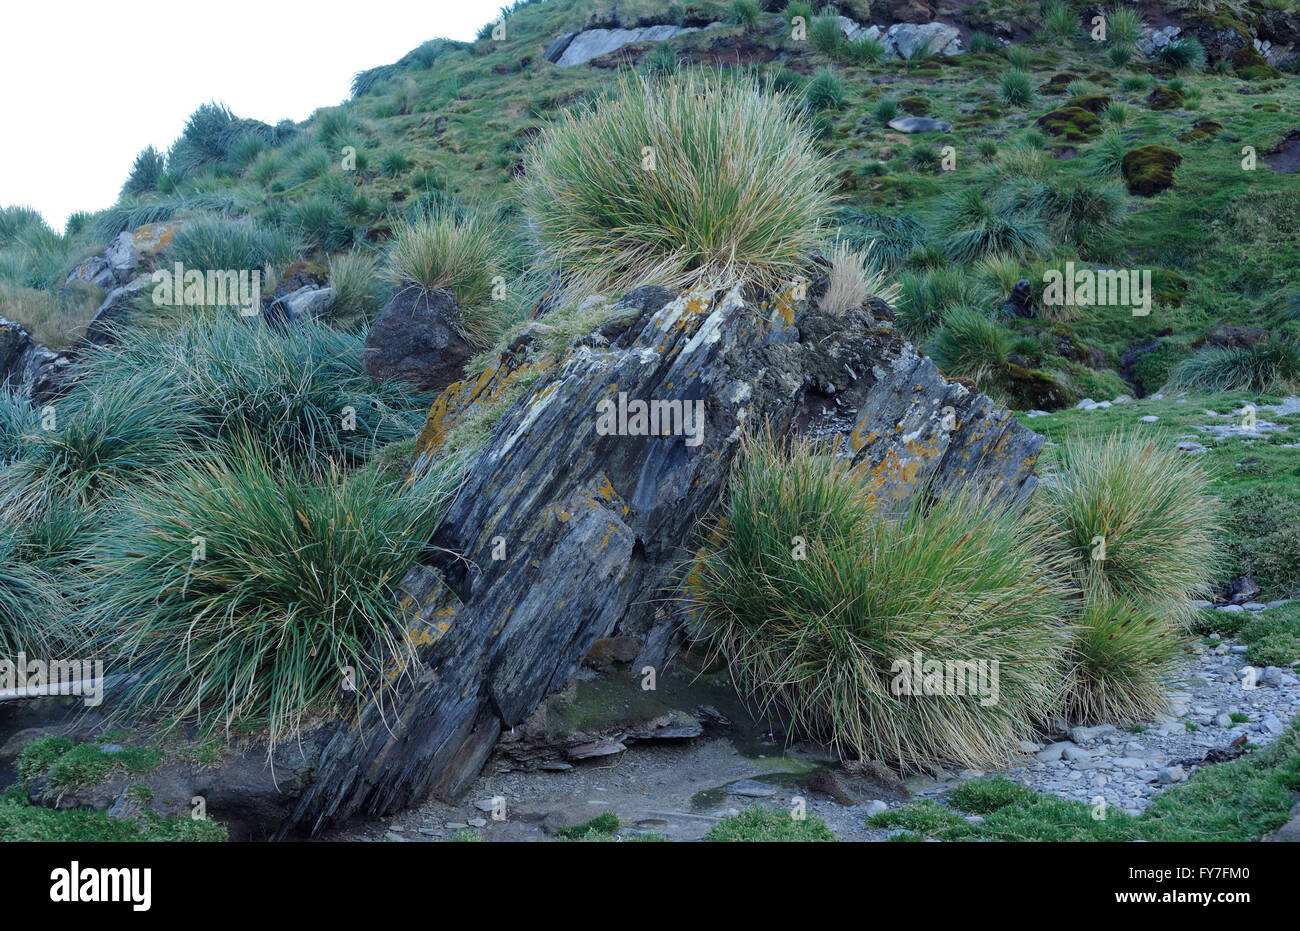 Tussac grass (Poa flabellata) growing on a rocky hillside. Ocean Harbour,  South Georgia. - Stock Image